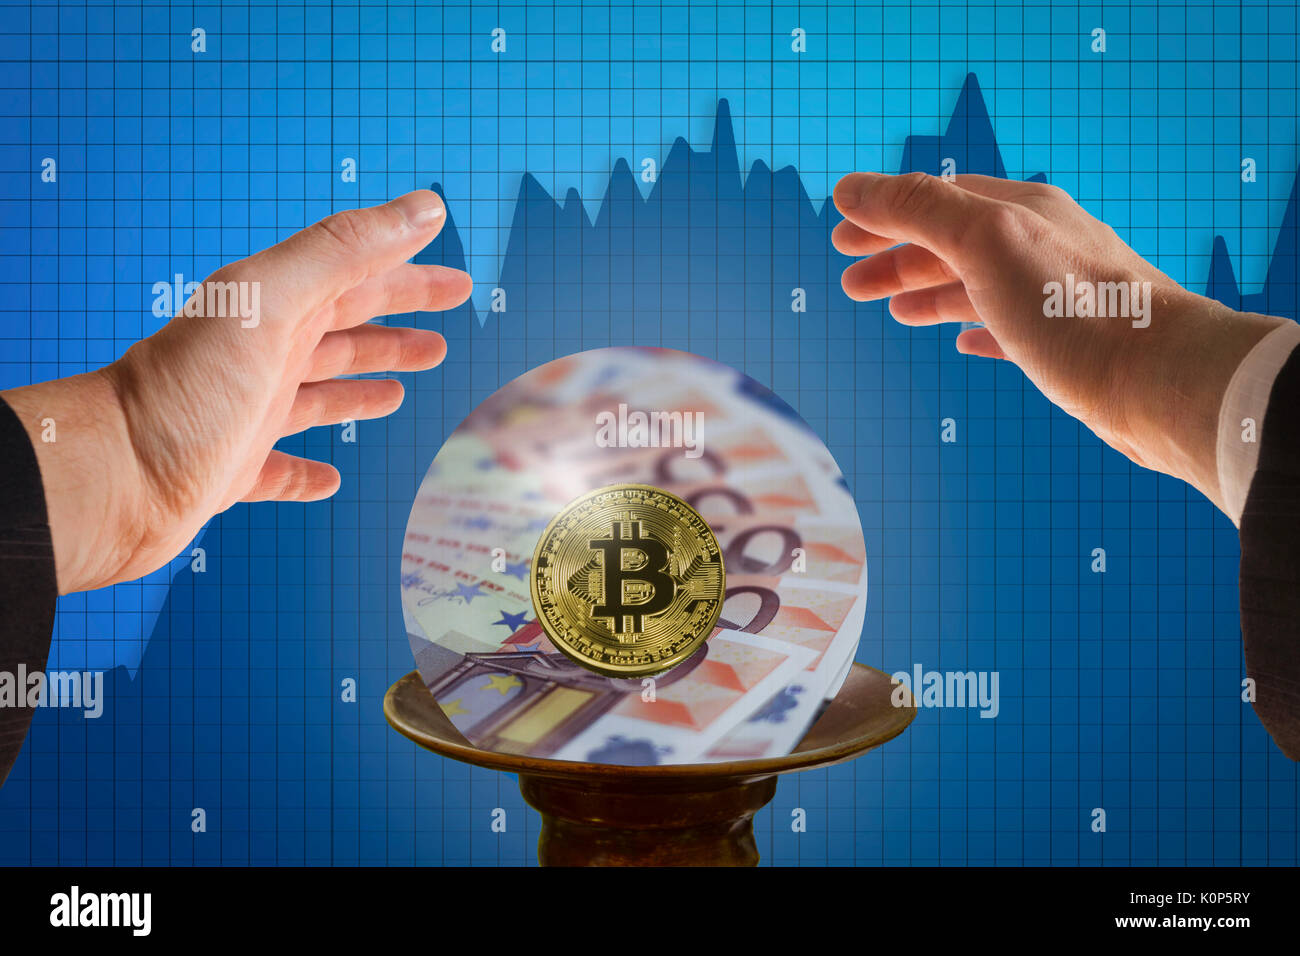 The concept of fortune teller businessman predicting future  of bitcoin with crystal ball - Stock Image